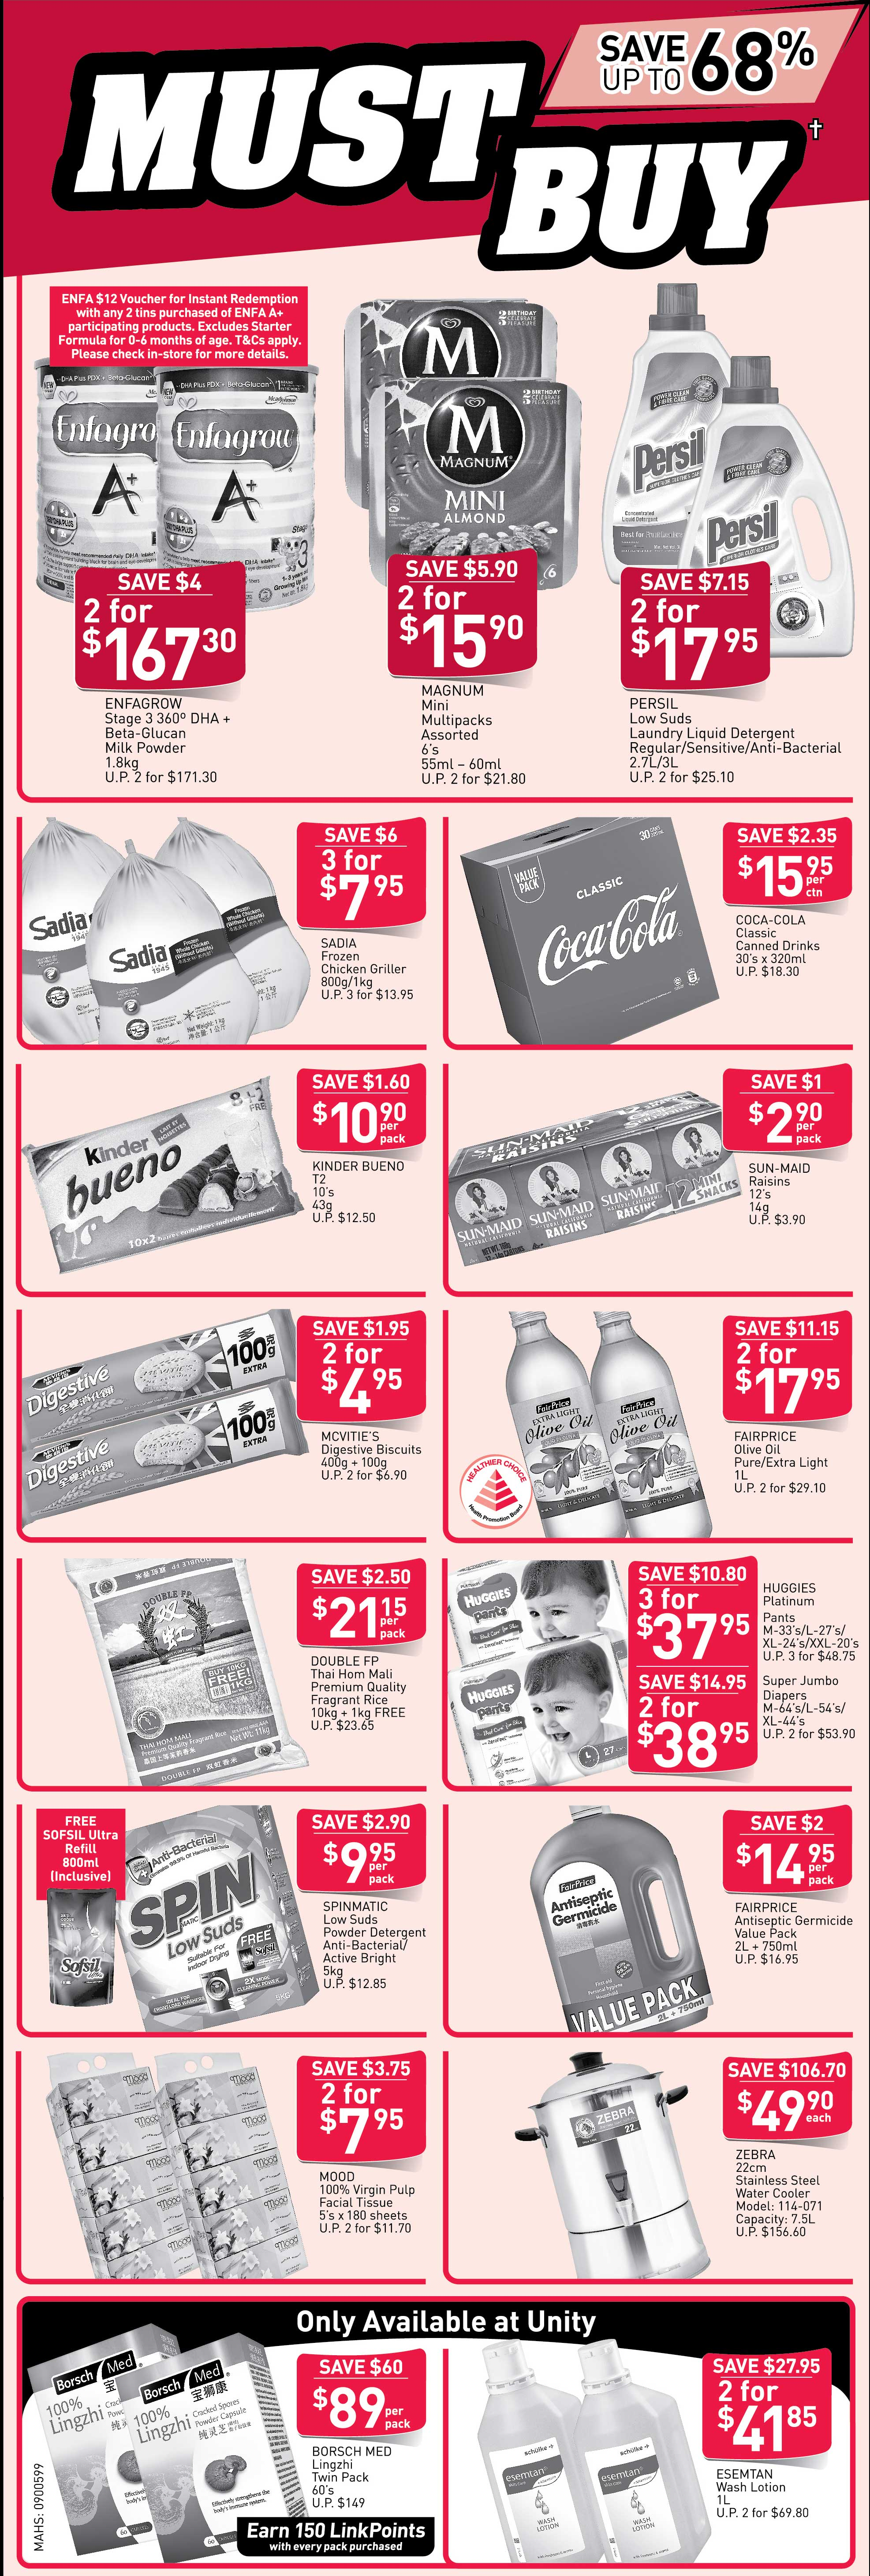 NTUC FairPrice Singapore Your Weekly Saver Promotion 13-19 Jun 2019 | Why Not Deals & Promotions